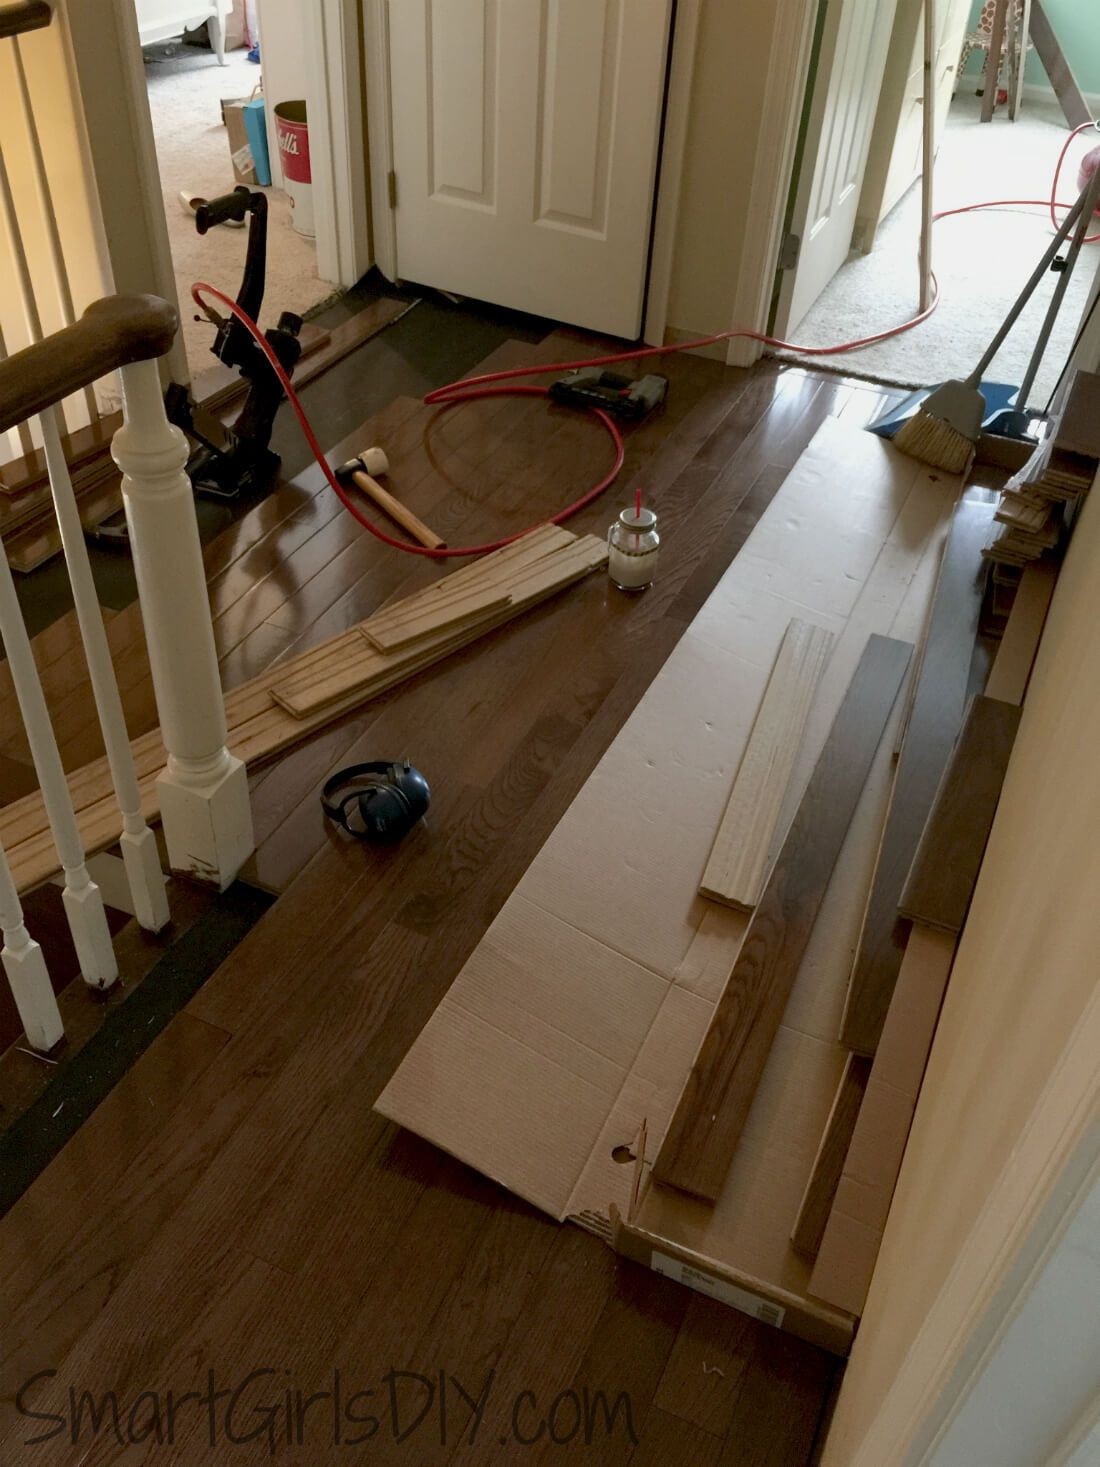 What tools are Needed to Install Hardwood Flooring Of Upstairs Hallway 1 Installing Hardwood Floors Inside How to Install Hardwood Floor All by Yourself